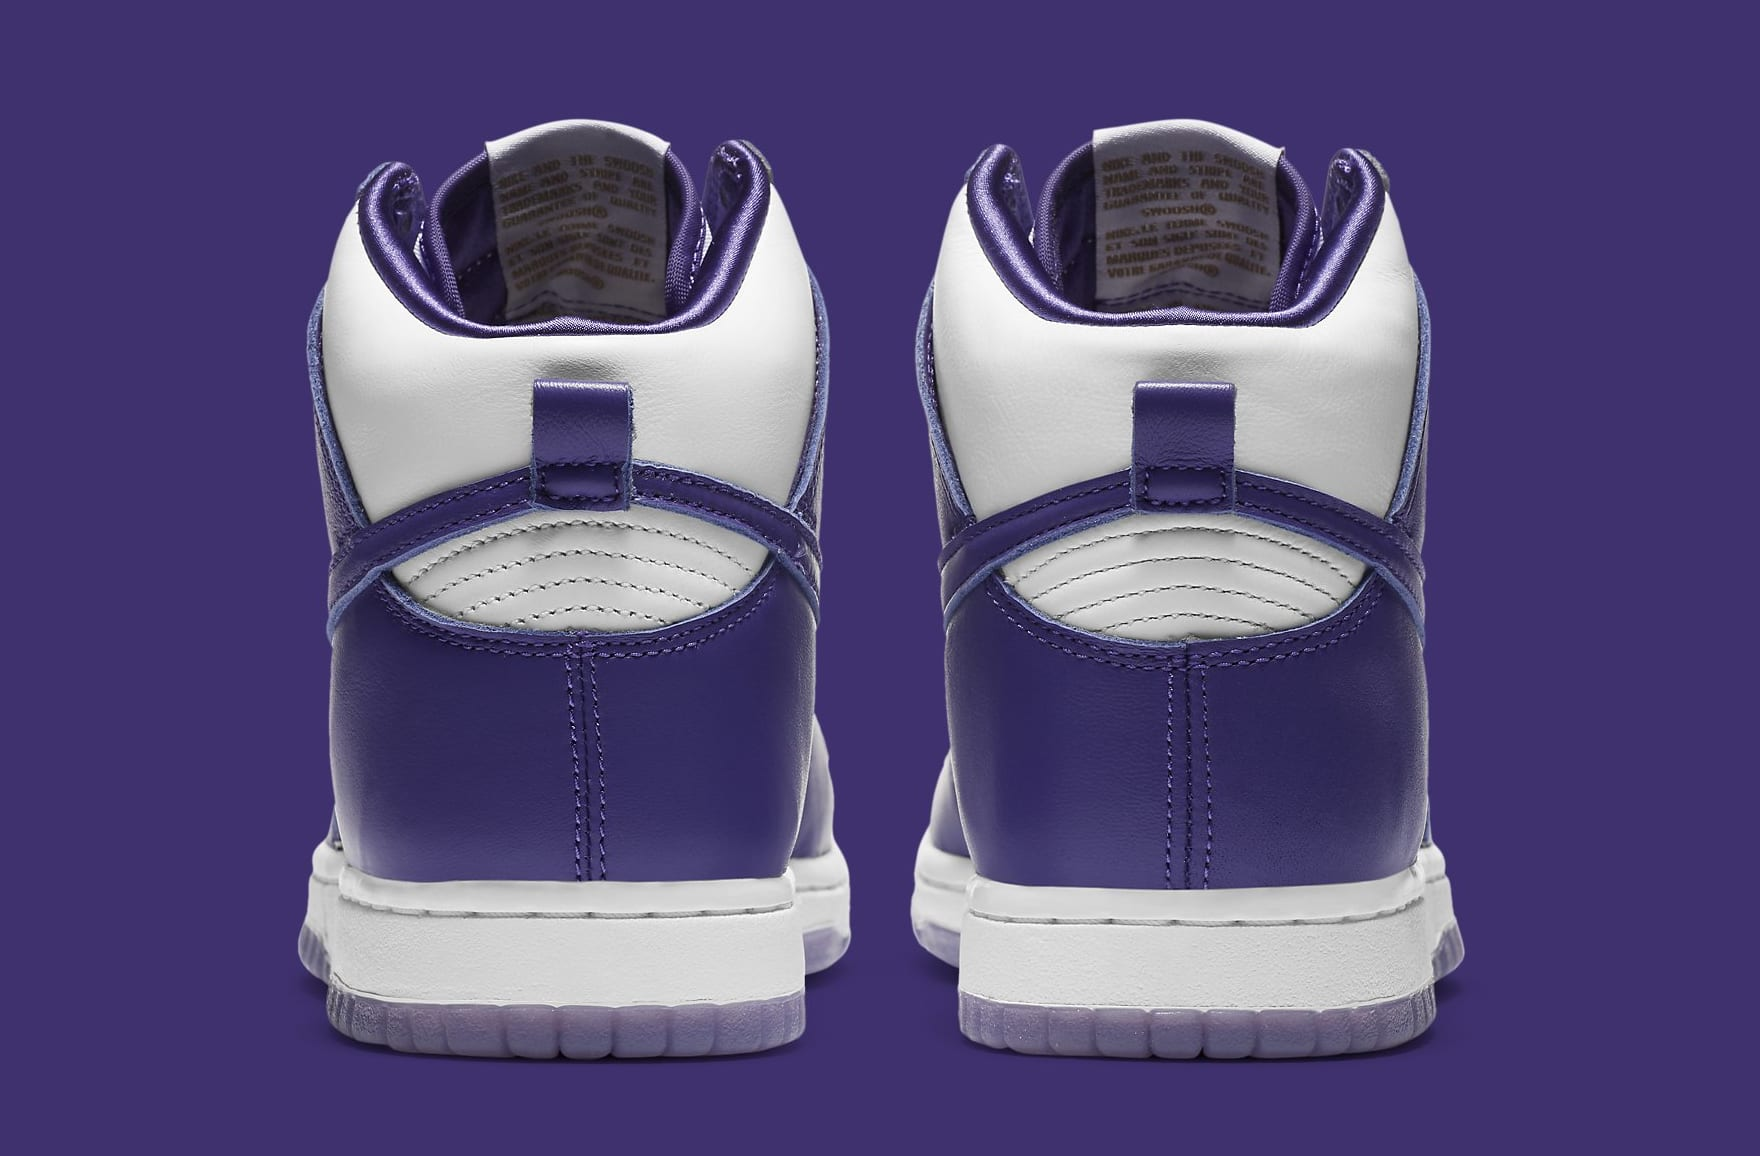 Nike Dunk High Women's Court Purple Release Date DC5382-100 Heel